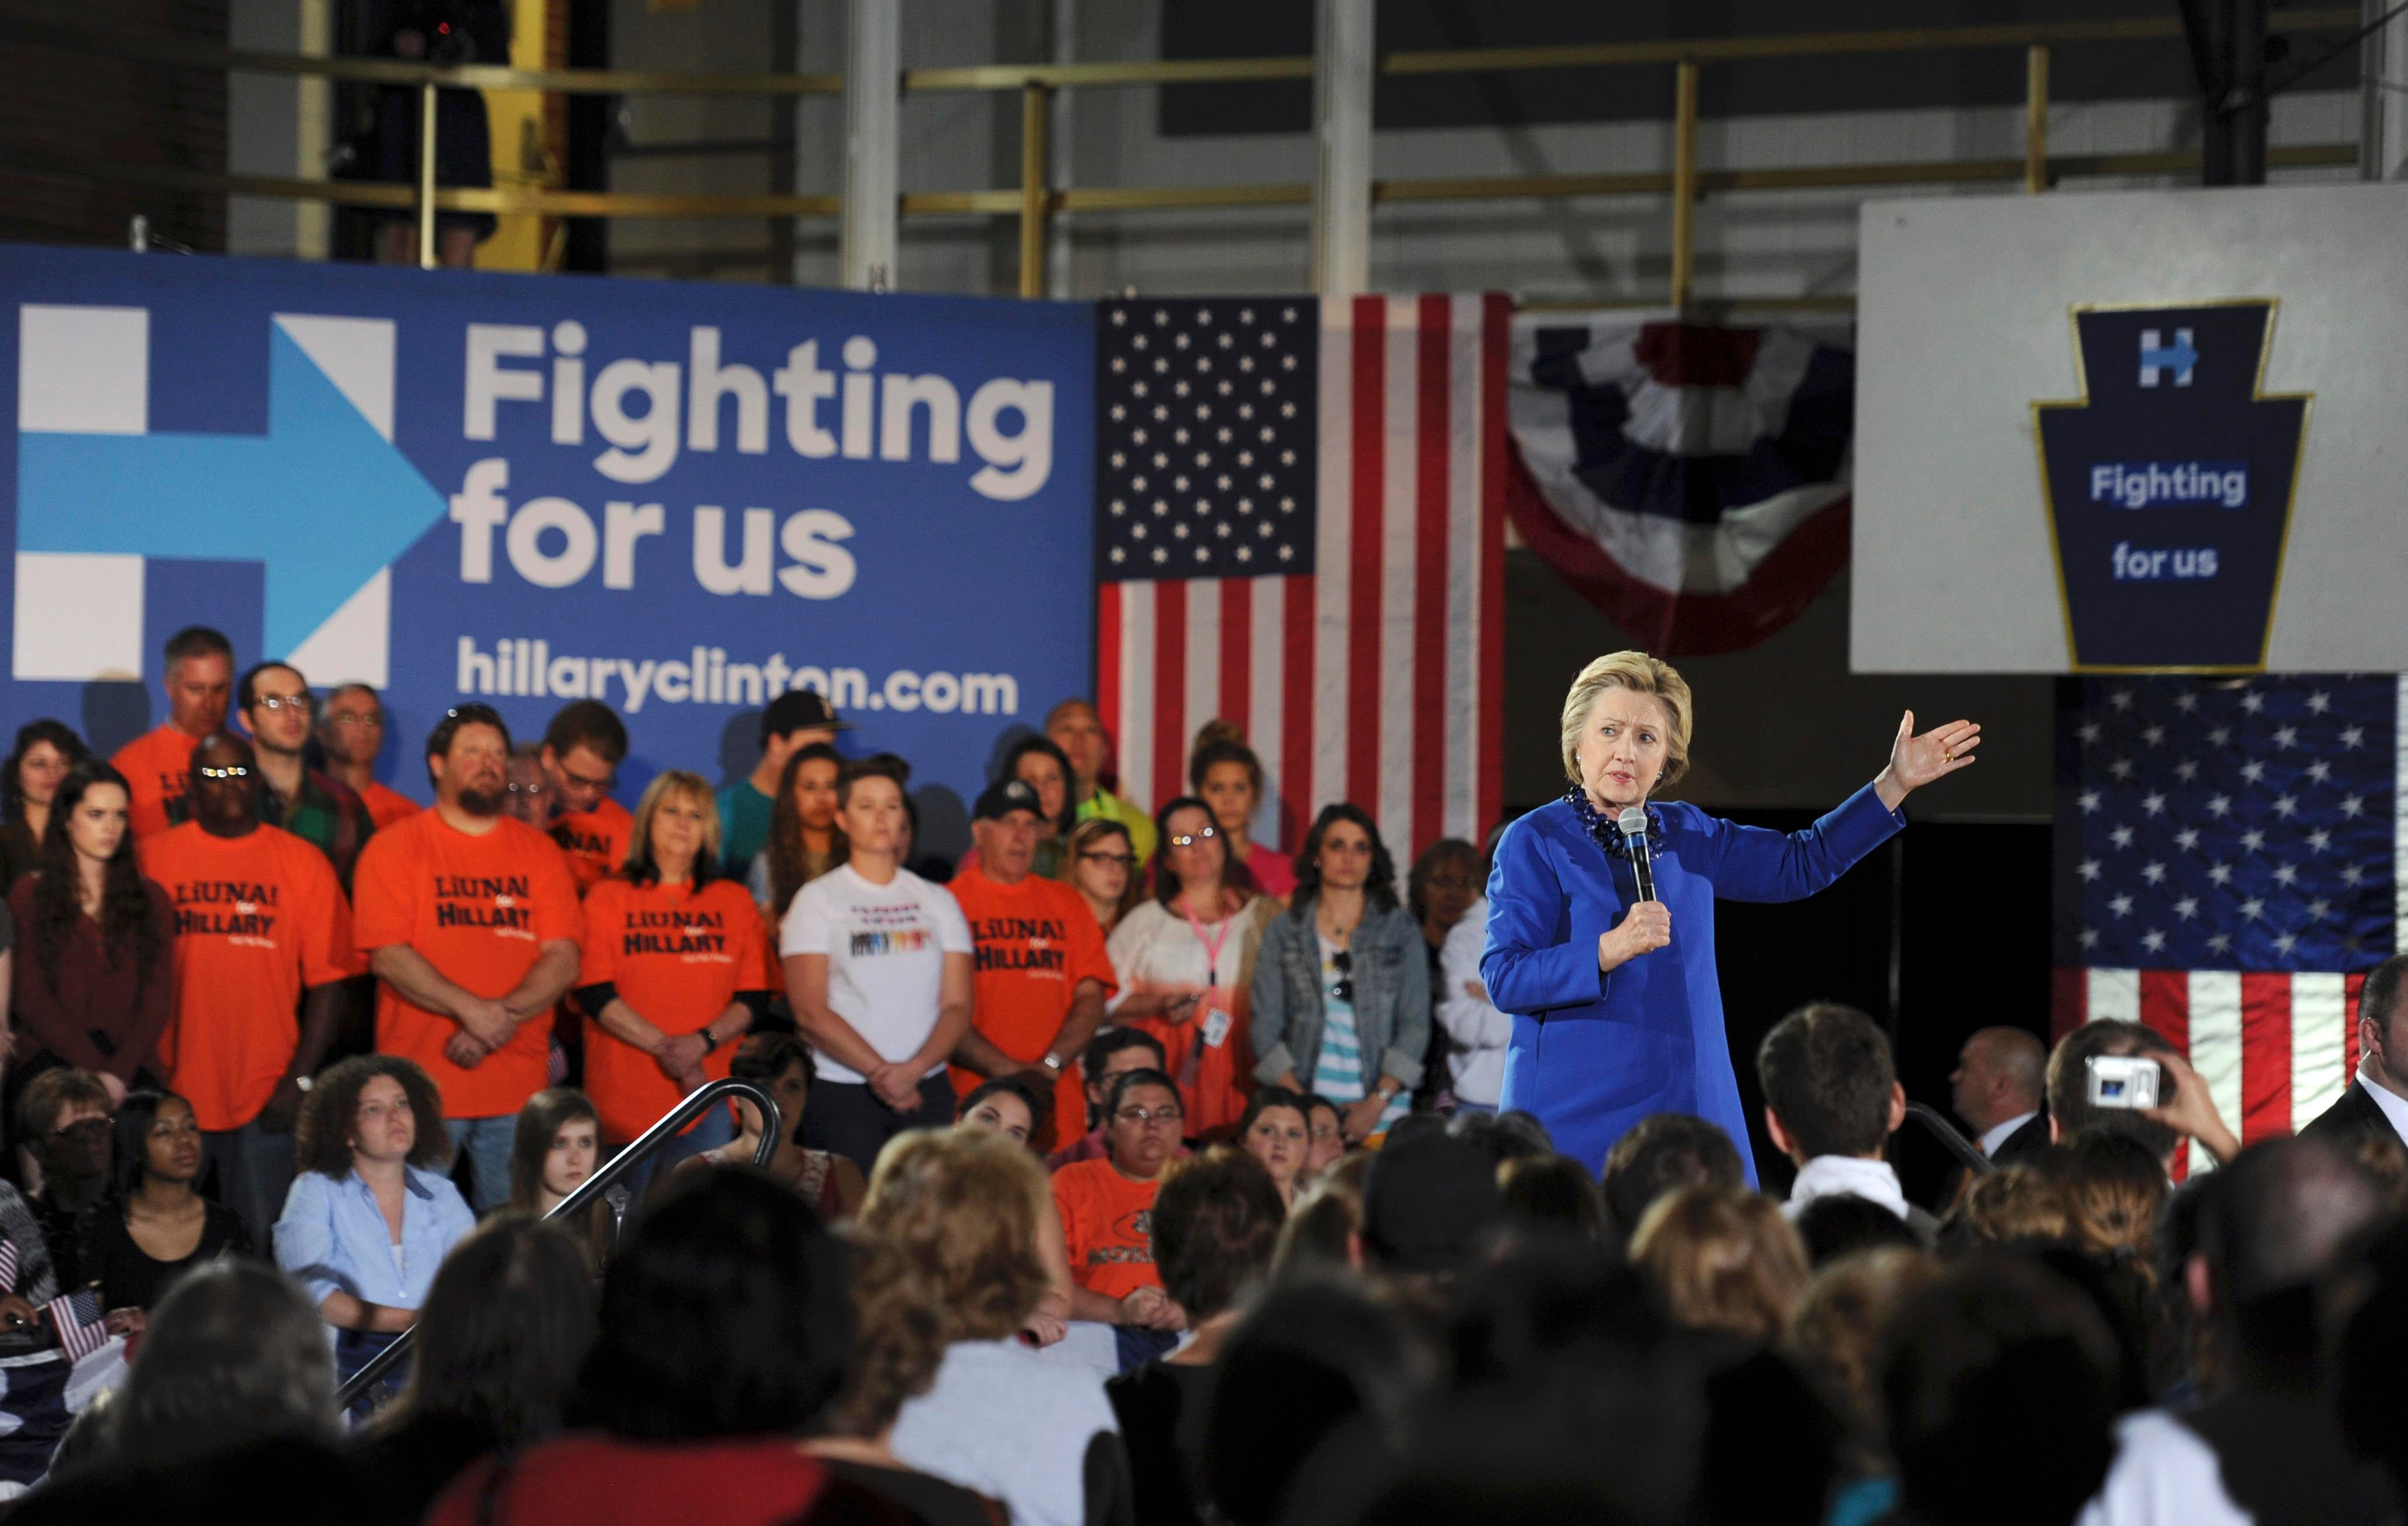 Democratic U.S. presidential candidate Hillary Clinton speaks during a campaign rally at Westmoreland County Community College in Youngwood, Pennsylvania, U.S., April 25, 2016. REUTERS/Louis Ruediger EDITORIAL USE ONLY. NO RESALES. NO ARCHIVE